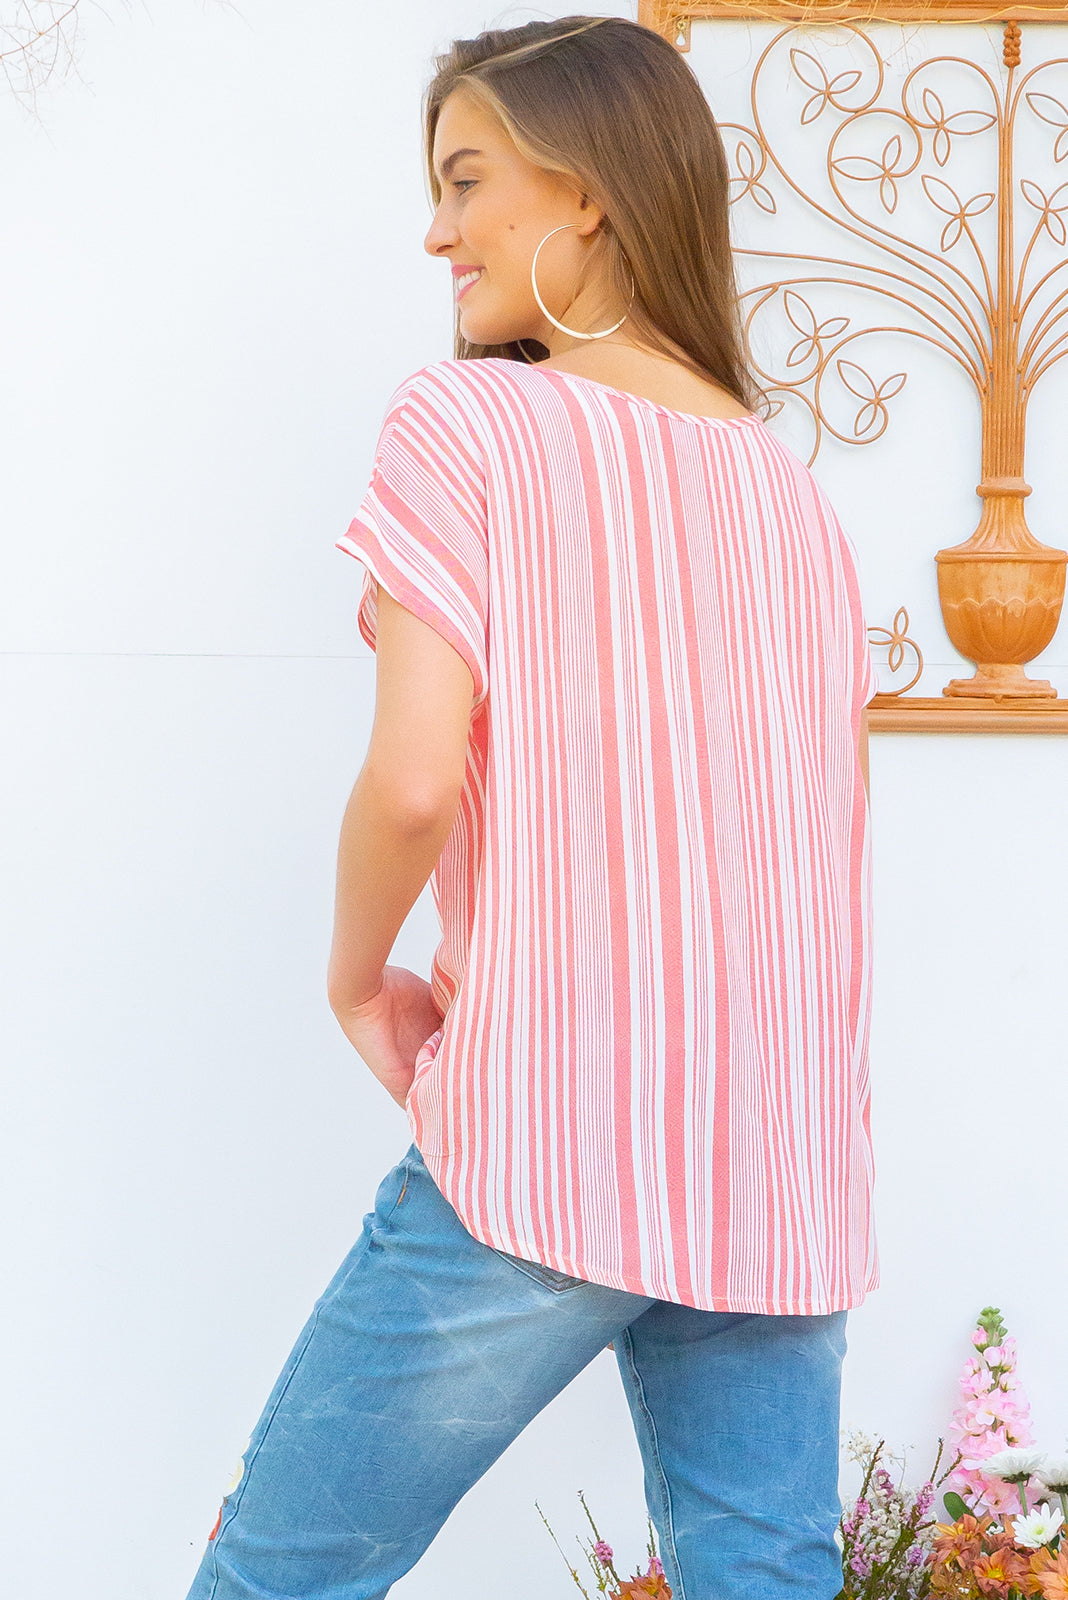 Sugar Orangina Top crinkle rayon relaxed fit longline boho top in a cool coral and white stripe crinkle rayon